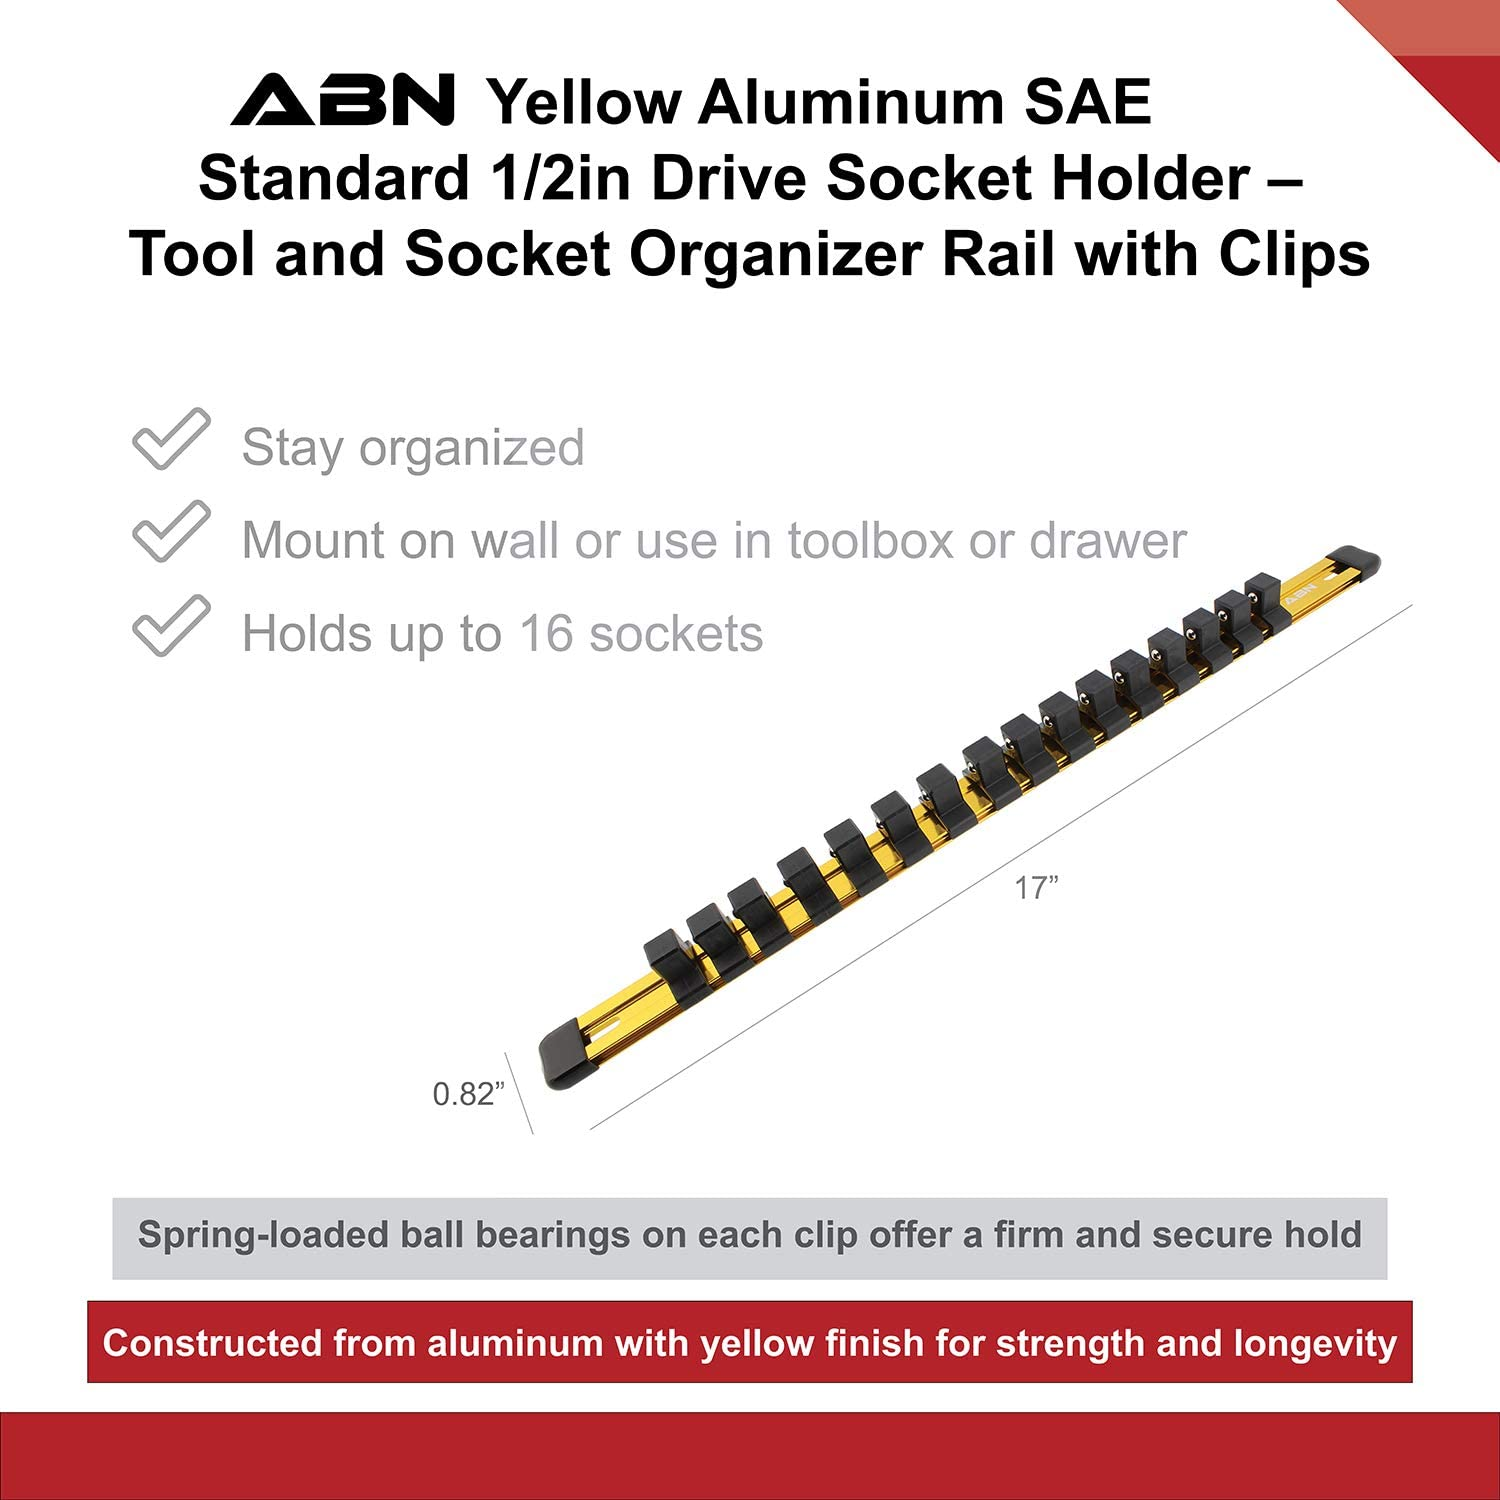 ABN Green Aluminum SAE Standard 1//2in Drive Socket Holder Tool and Socket Organizer Rail with Clips